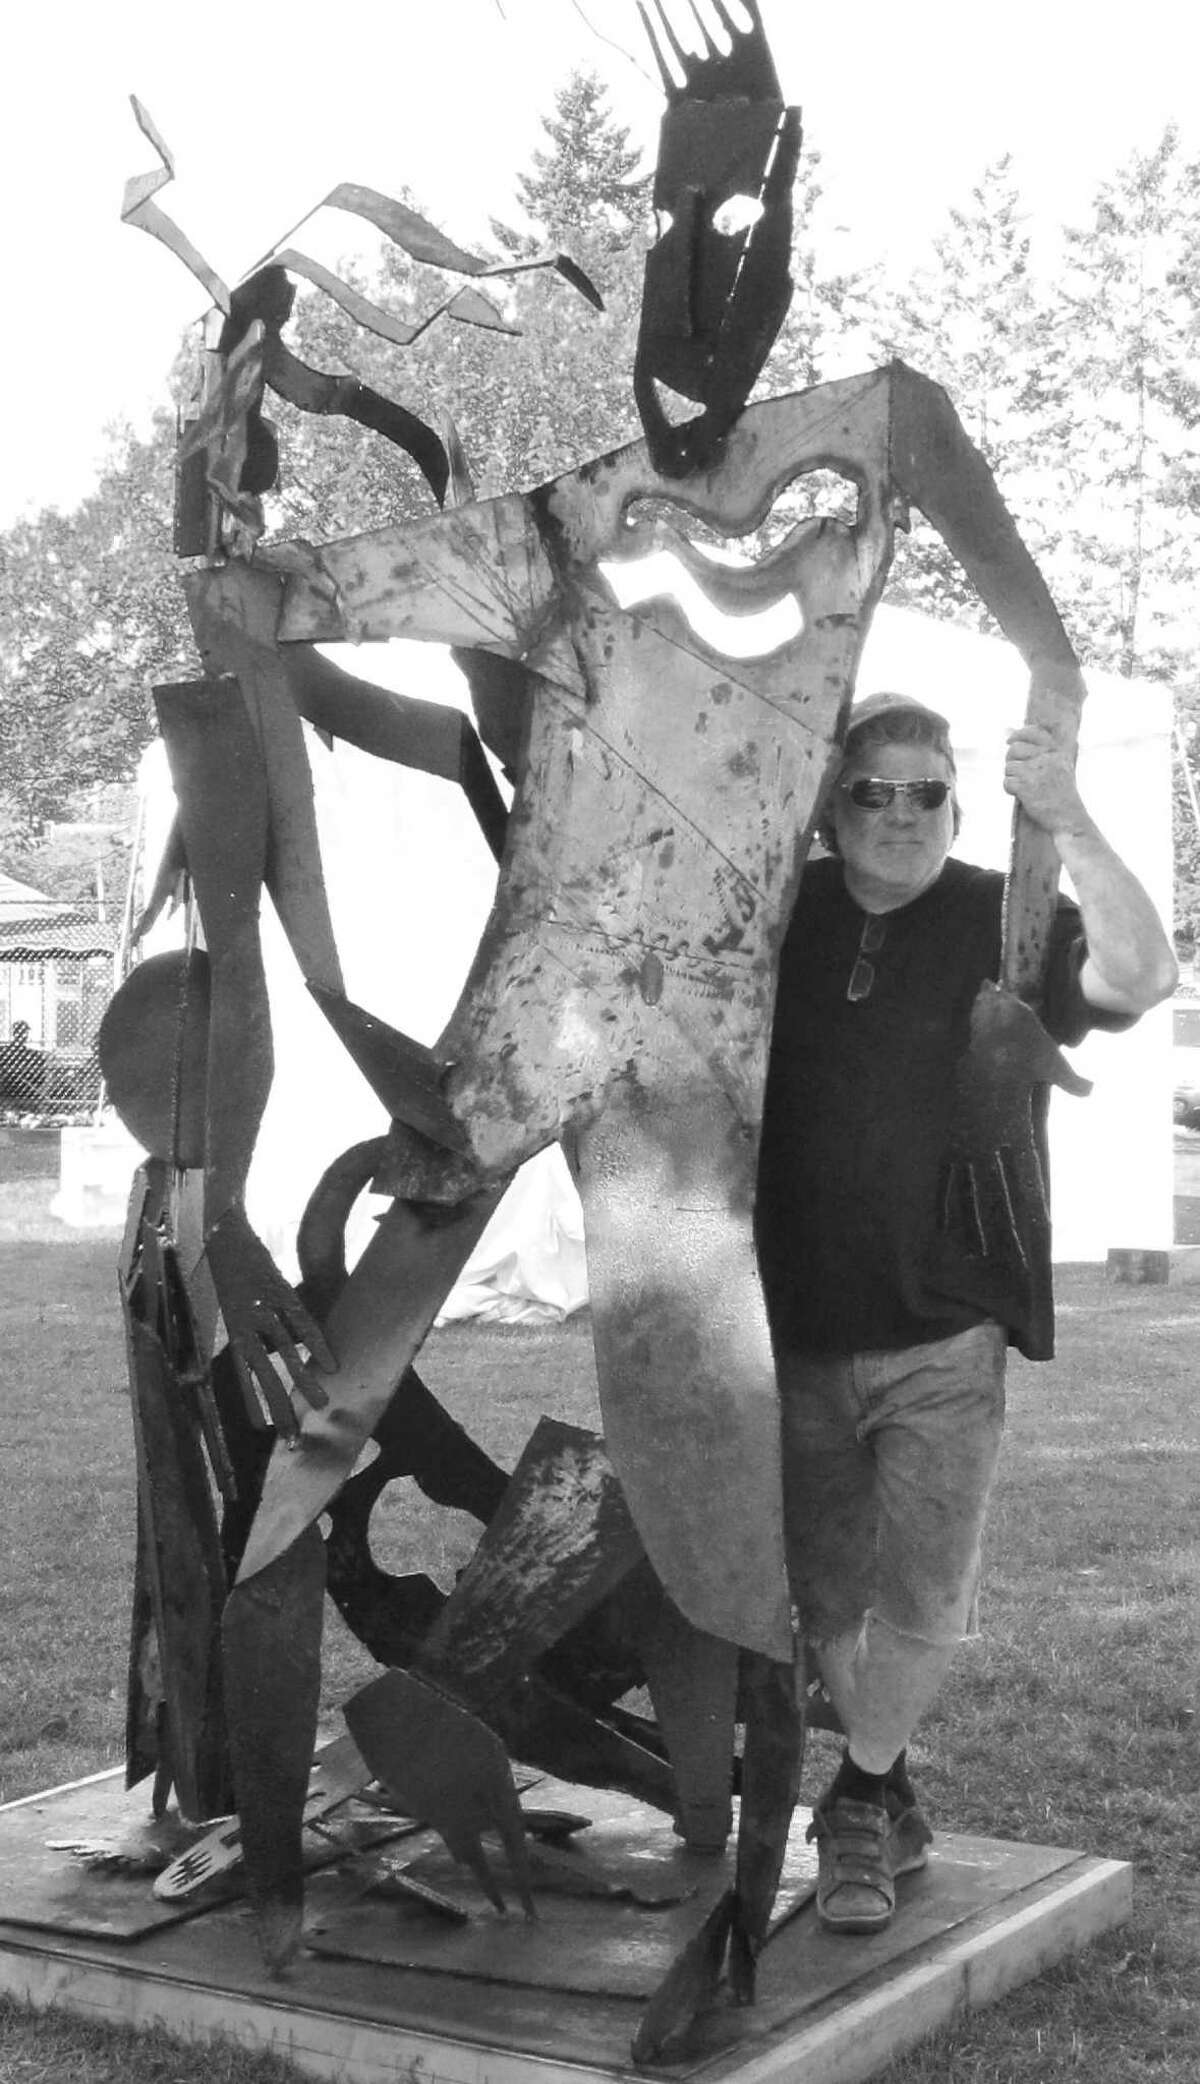 Lee Paine captures Swedish sculptor Kent Wahlbeck dancing with the devil at the recent Grassroots International Sculpture Symposium. Wahlbeck's creation,